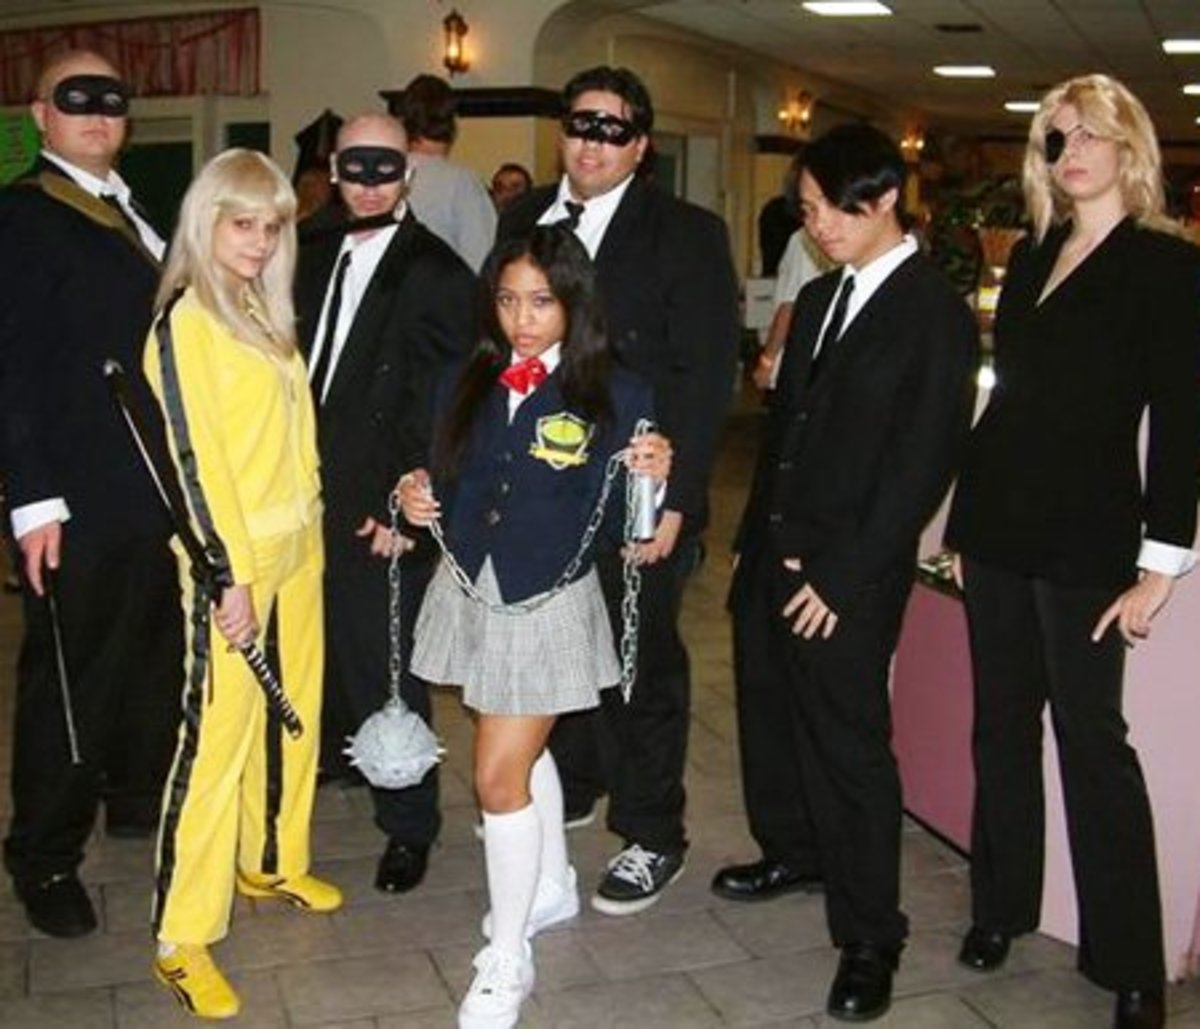 kill bill group costume 101 halloween costume ideas for women